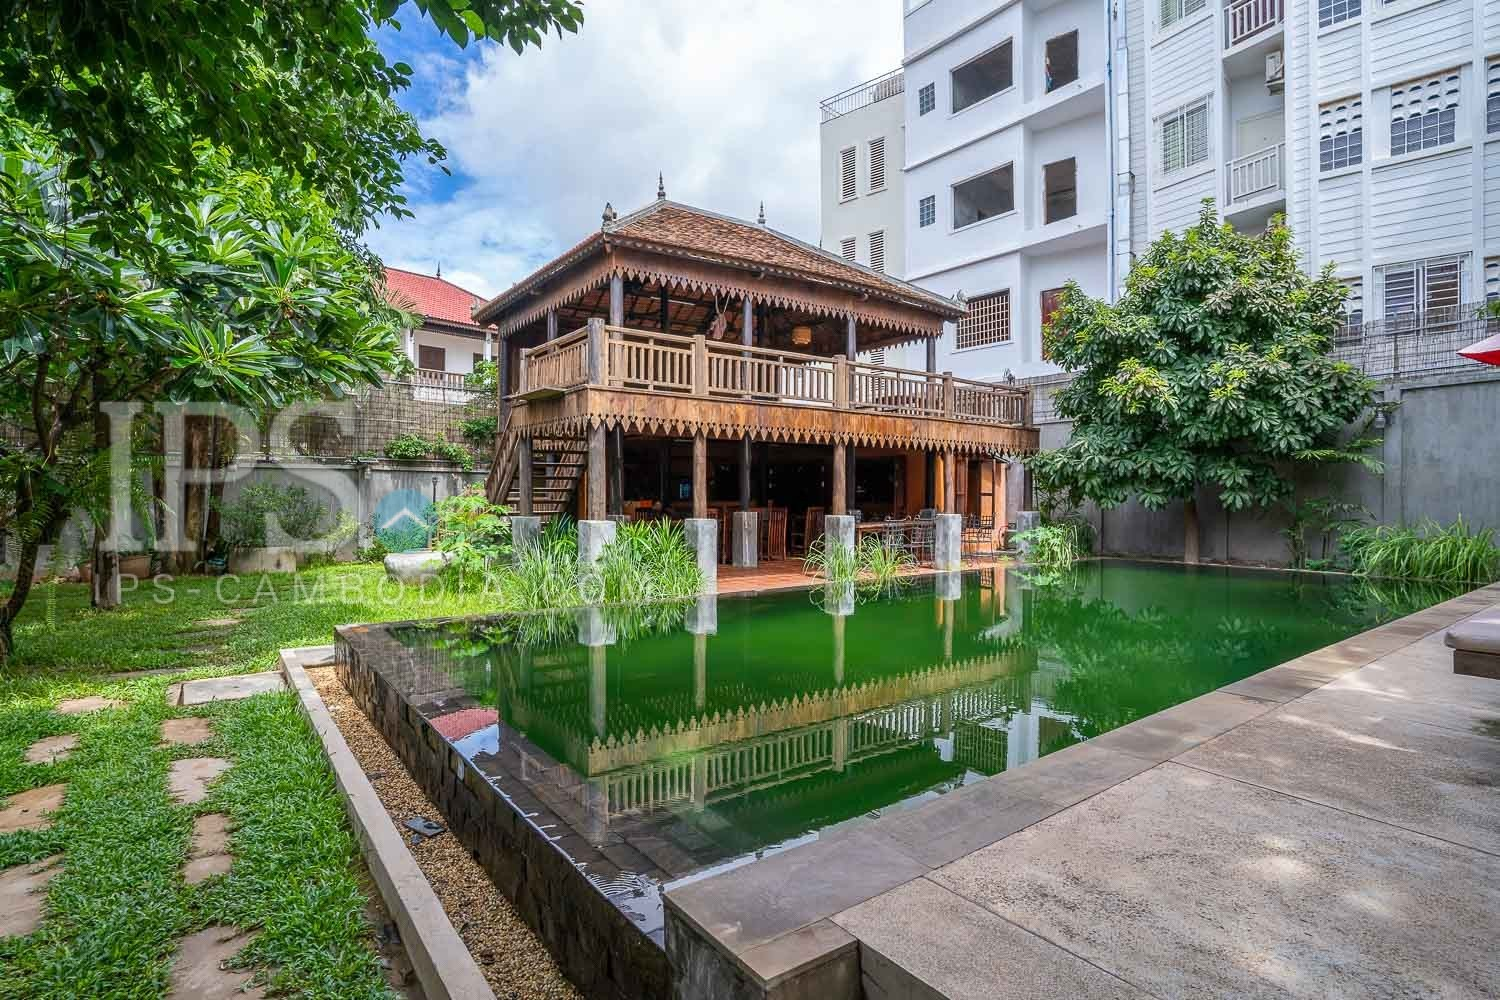 13 Room Boutique Villa For Sale - Svay Dangkum, Siem Reap